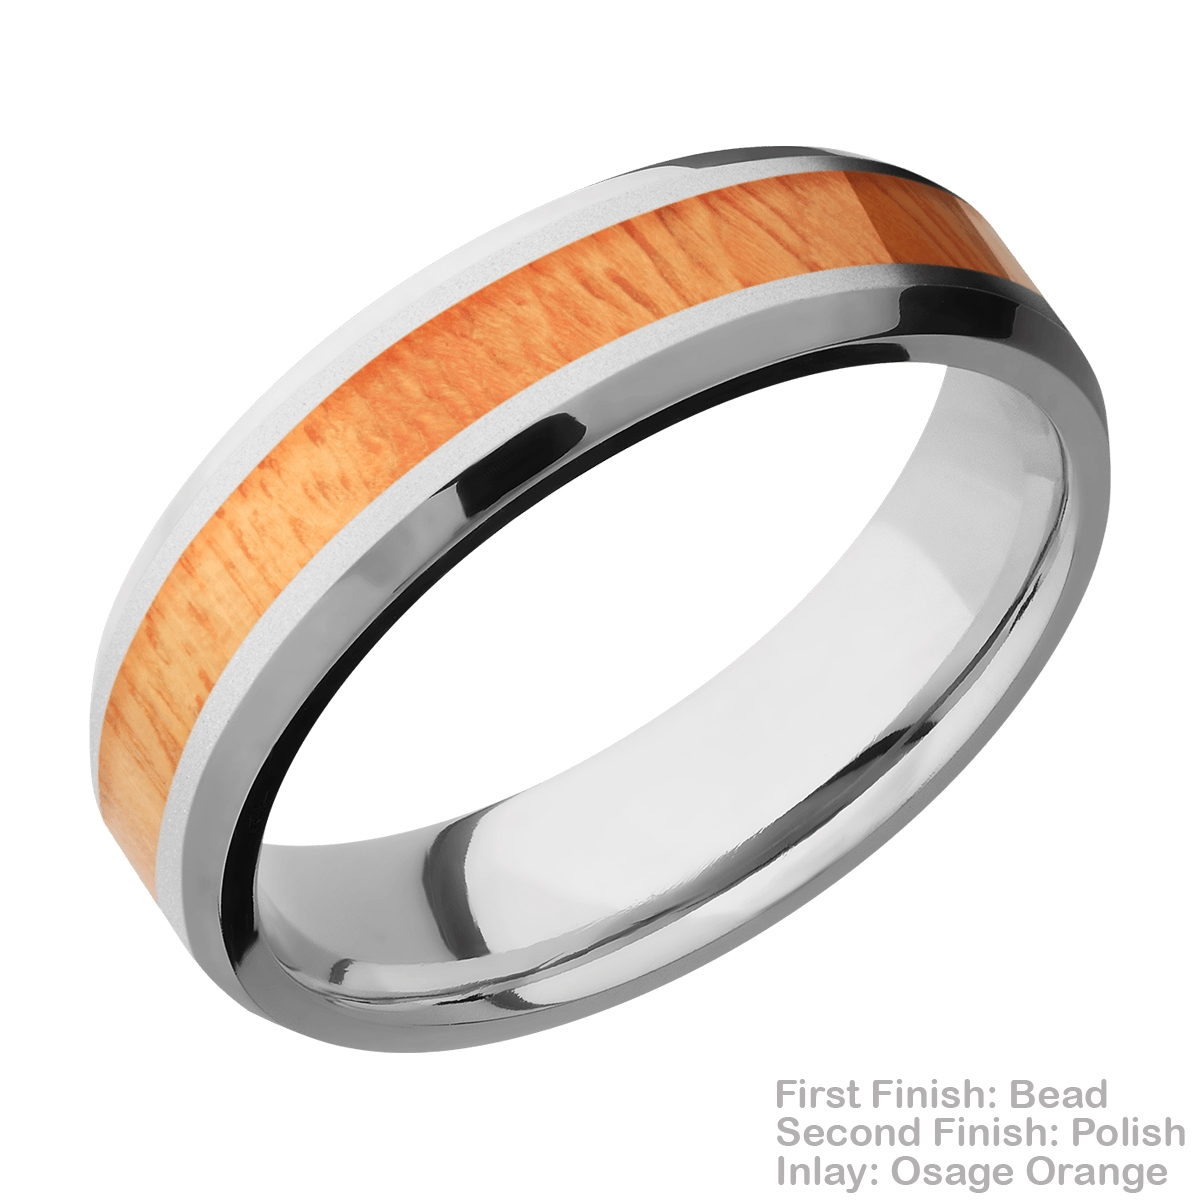 Lashbrook CC6B13(NS)/HARDWOOD Cobalt Chrome Wedding Ring or Band Alternative View 5